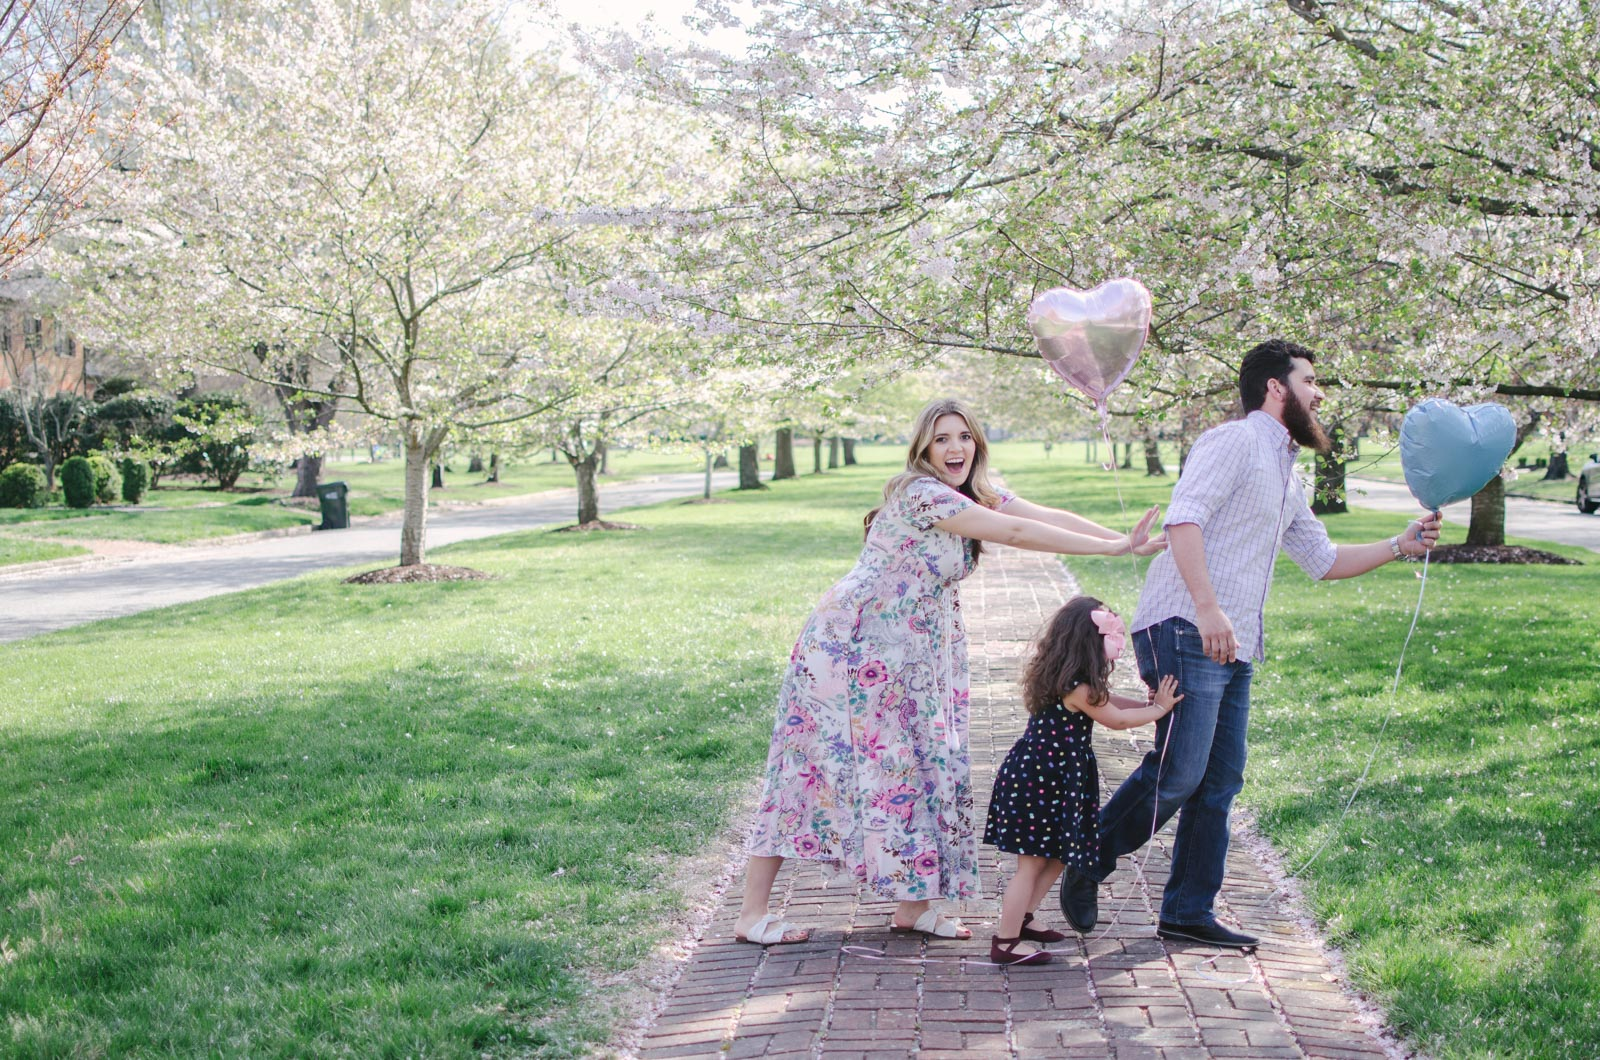 baby gender reveal - it's a girl reveal! | bylaurenm.com